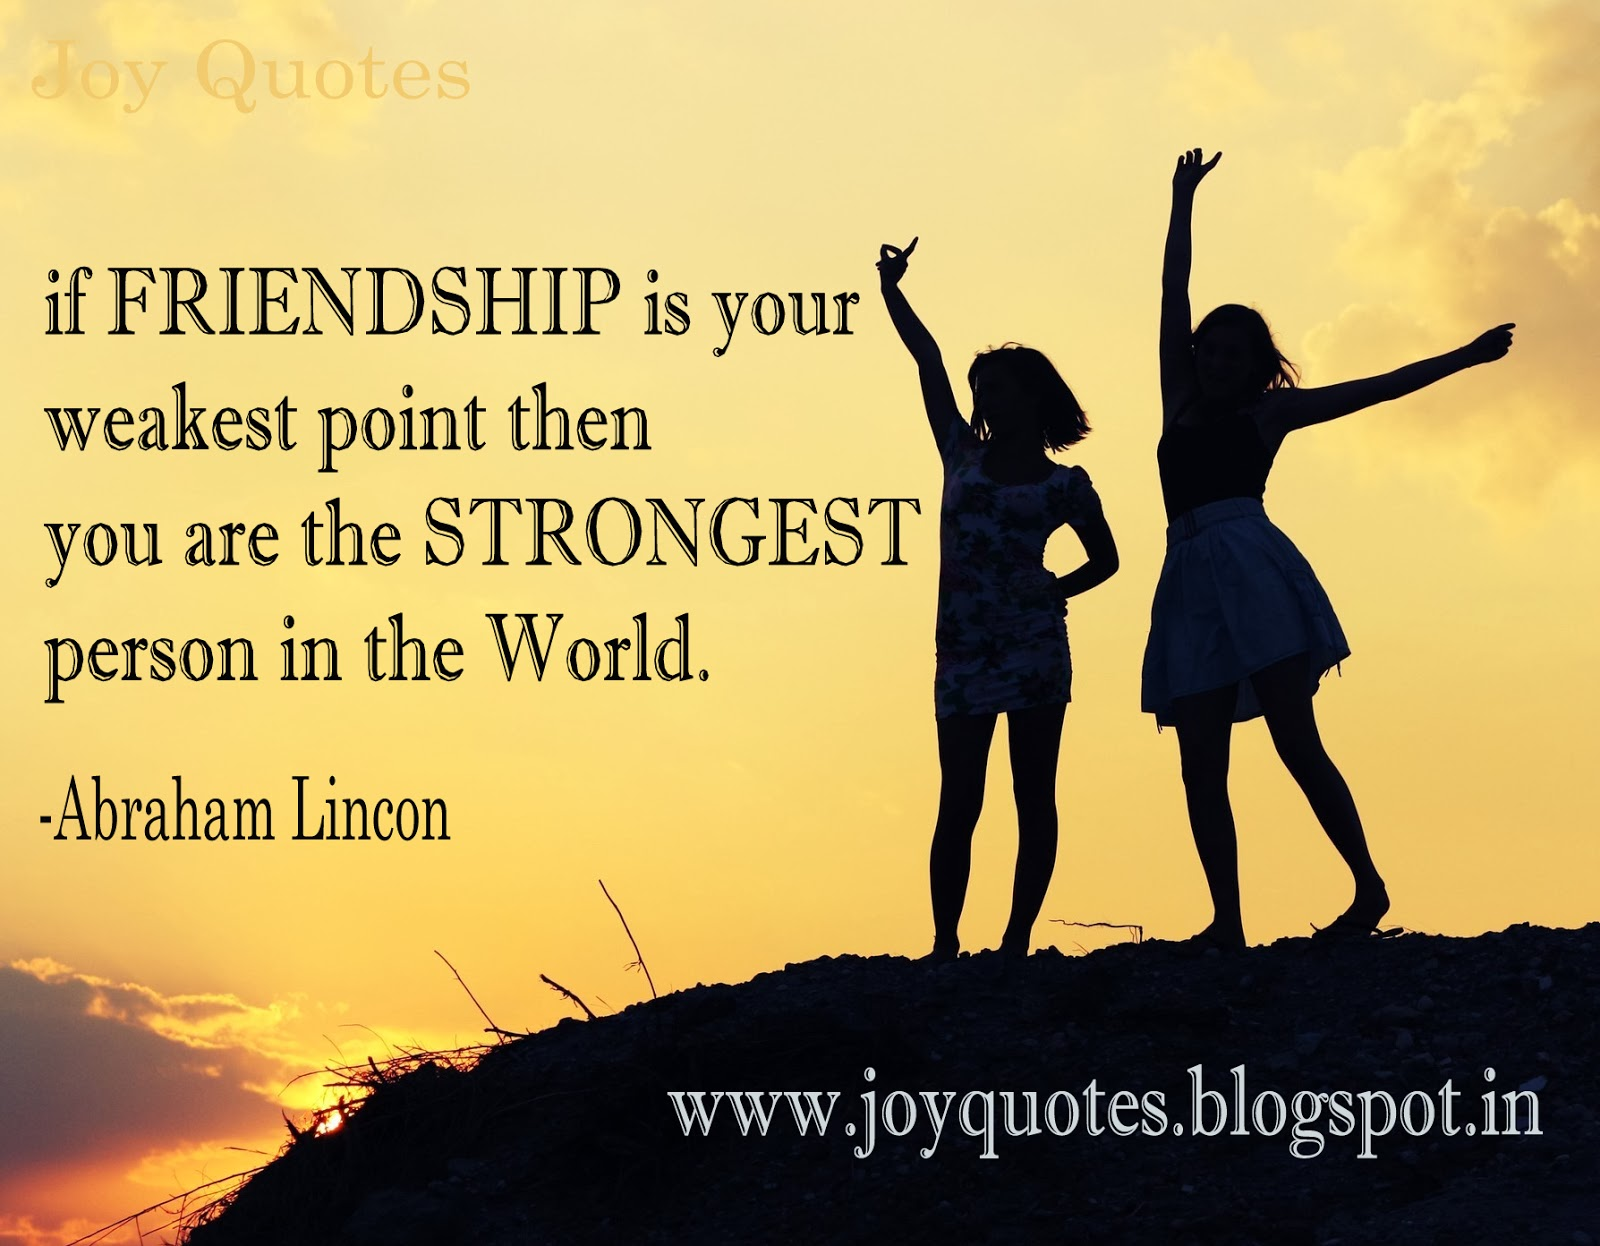 Quotes About Friendship Pictures Joy Quotes Friendship Quotes